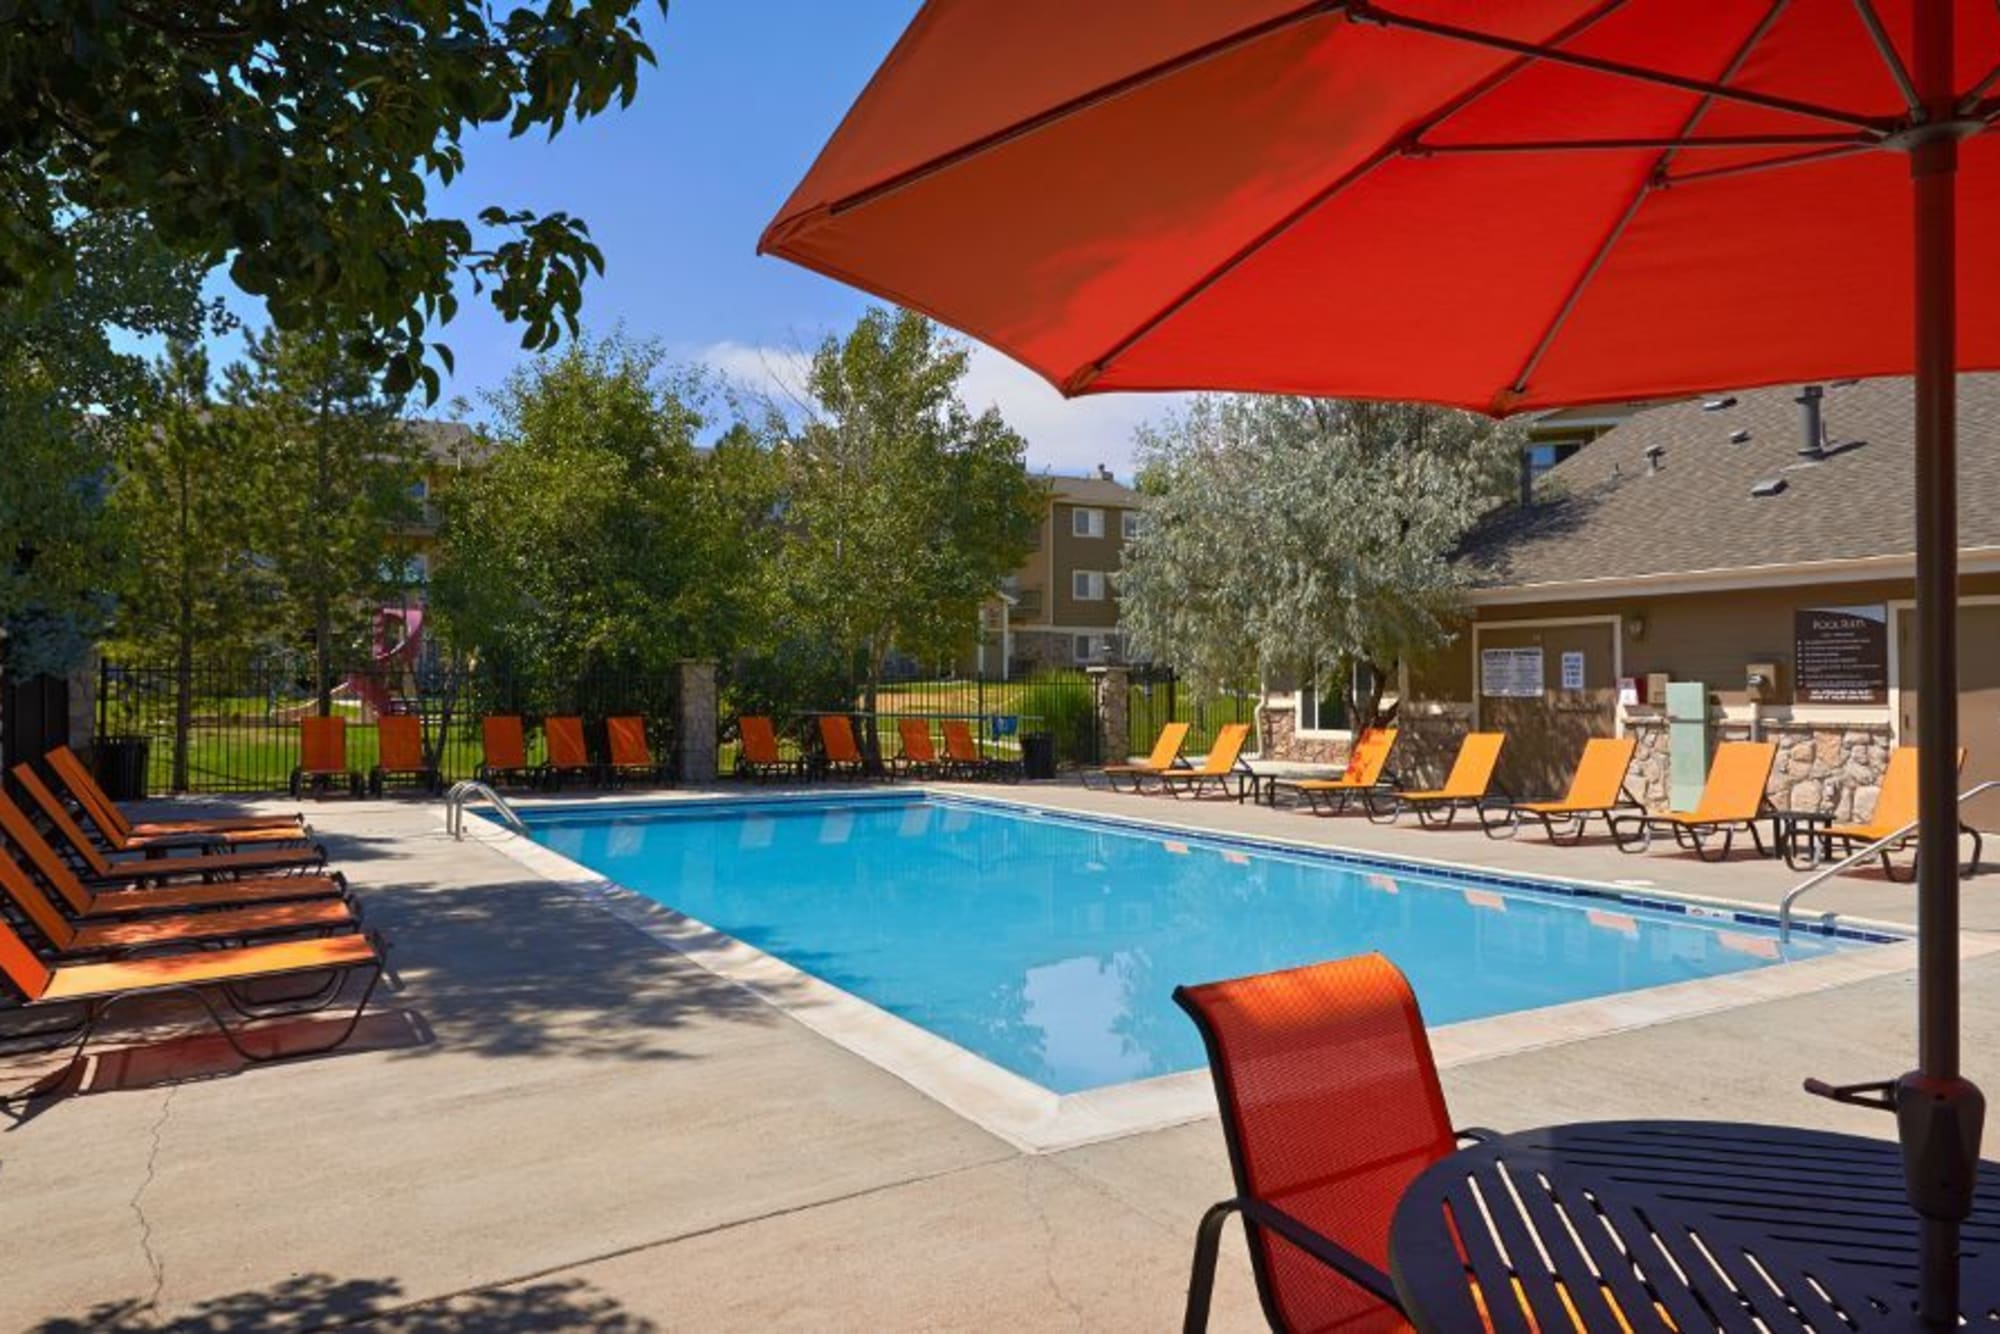 The pool surrounded by lush trees at Crossroads at City Center Apartments in Aurora, Colorado